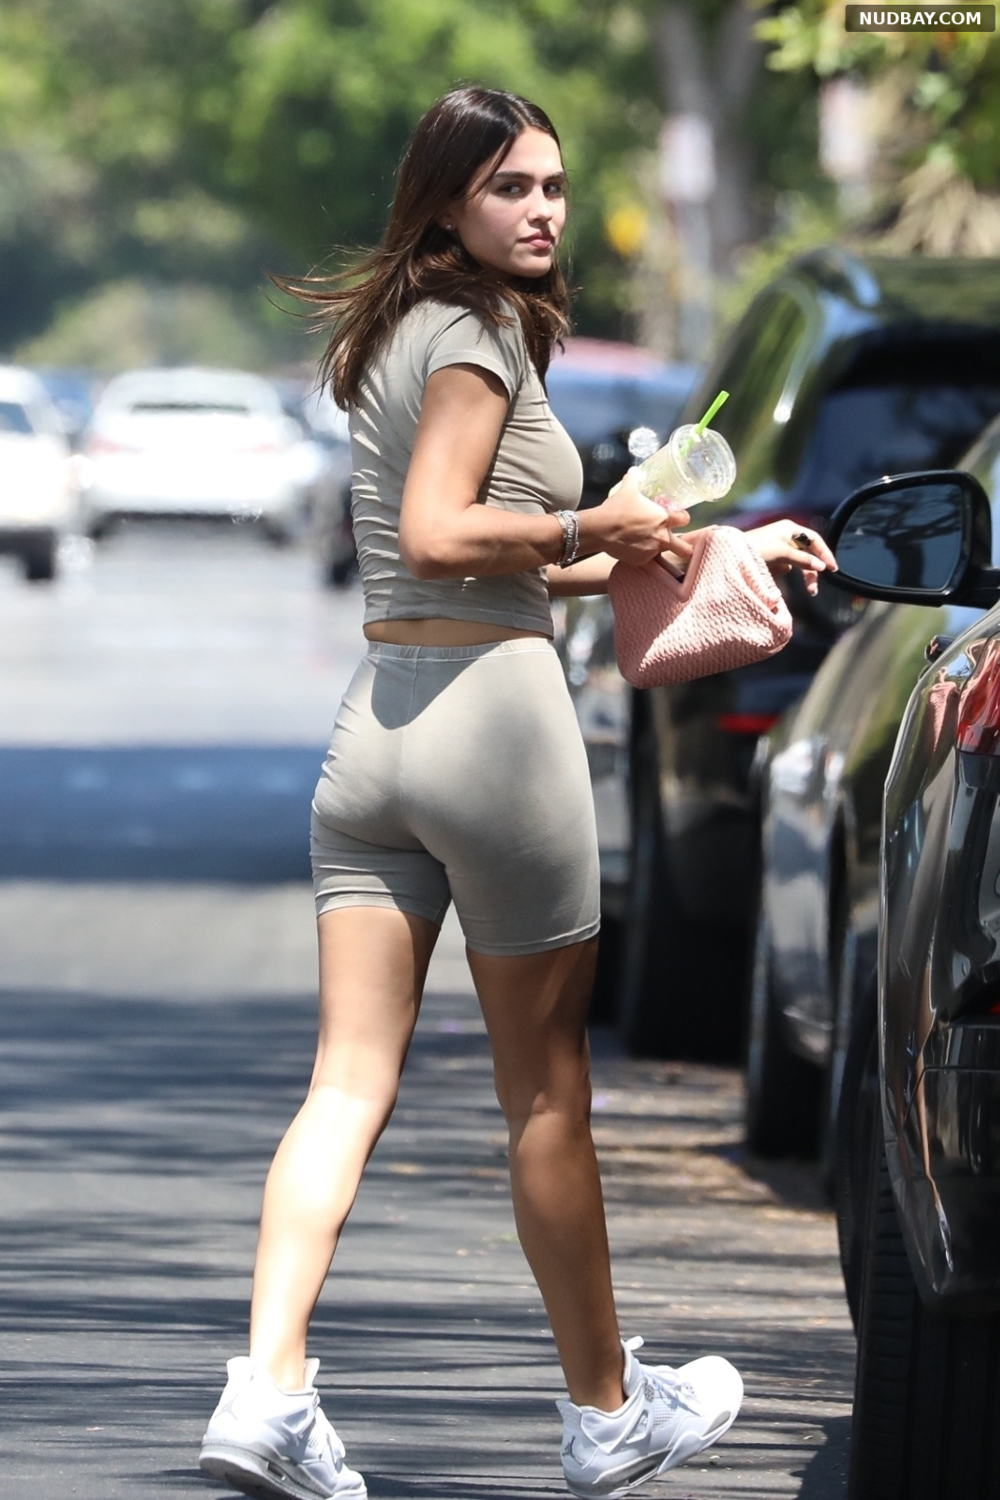 Amelia Gray Hamlin Booty out in West Hollywood Jul 07 2021